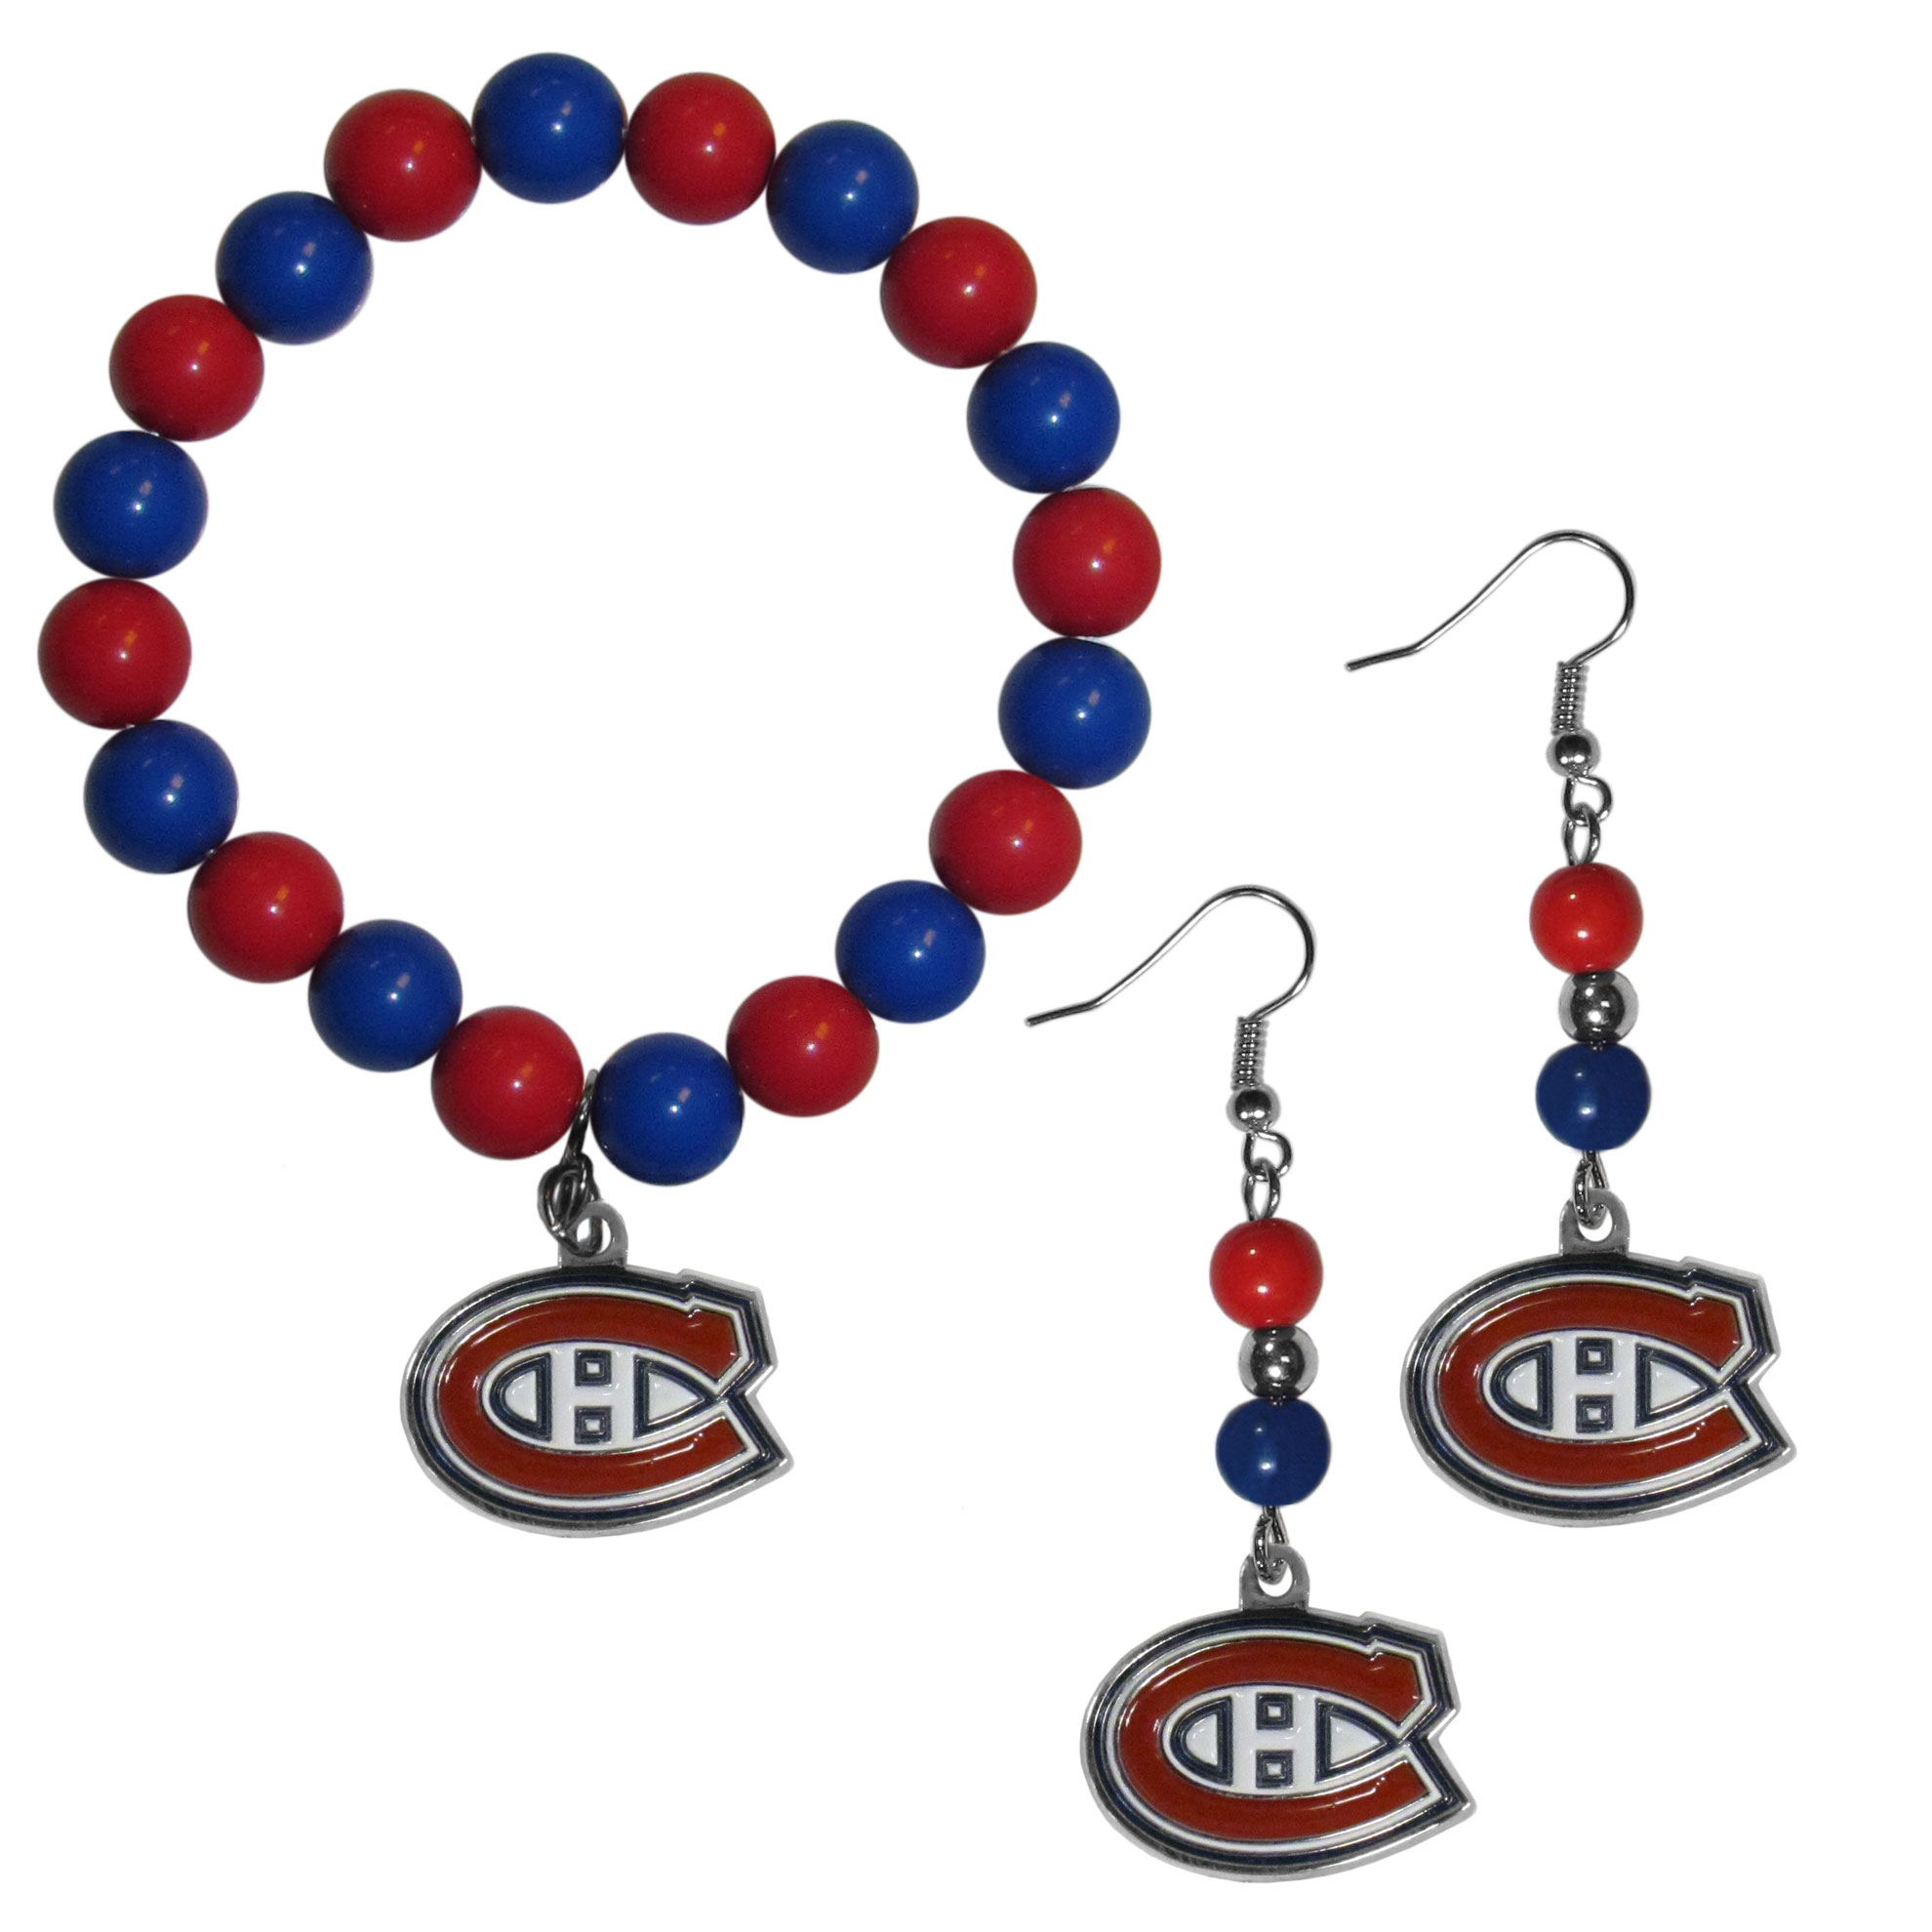 Montreal Canadiens® Fan Bead Earrings and Bracelet Set - This fun and colorful Montreal Canadiens® fan bead jewelry set is fun and casual with eye-catching beads in bright team colors. The fashionable dangle earrings feature a team colored beads that drop down to a carved and enameled charm. The stretch bracelet has larger matching beads that make a striking statement and have a matching team charm. These sassy yet sporty jewelry pieces make a perfect gift for any female fan. Spice up your game-day outfit with these fun colorful earrings and bracelet that are also cute enough for any day.